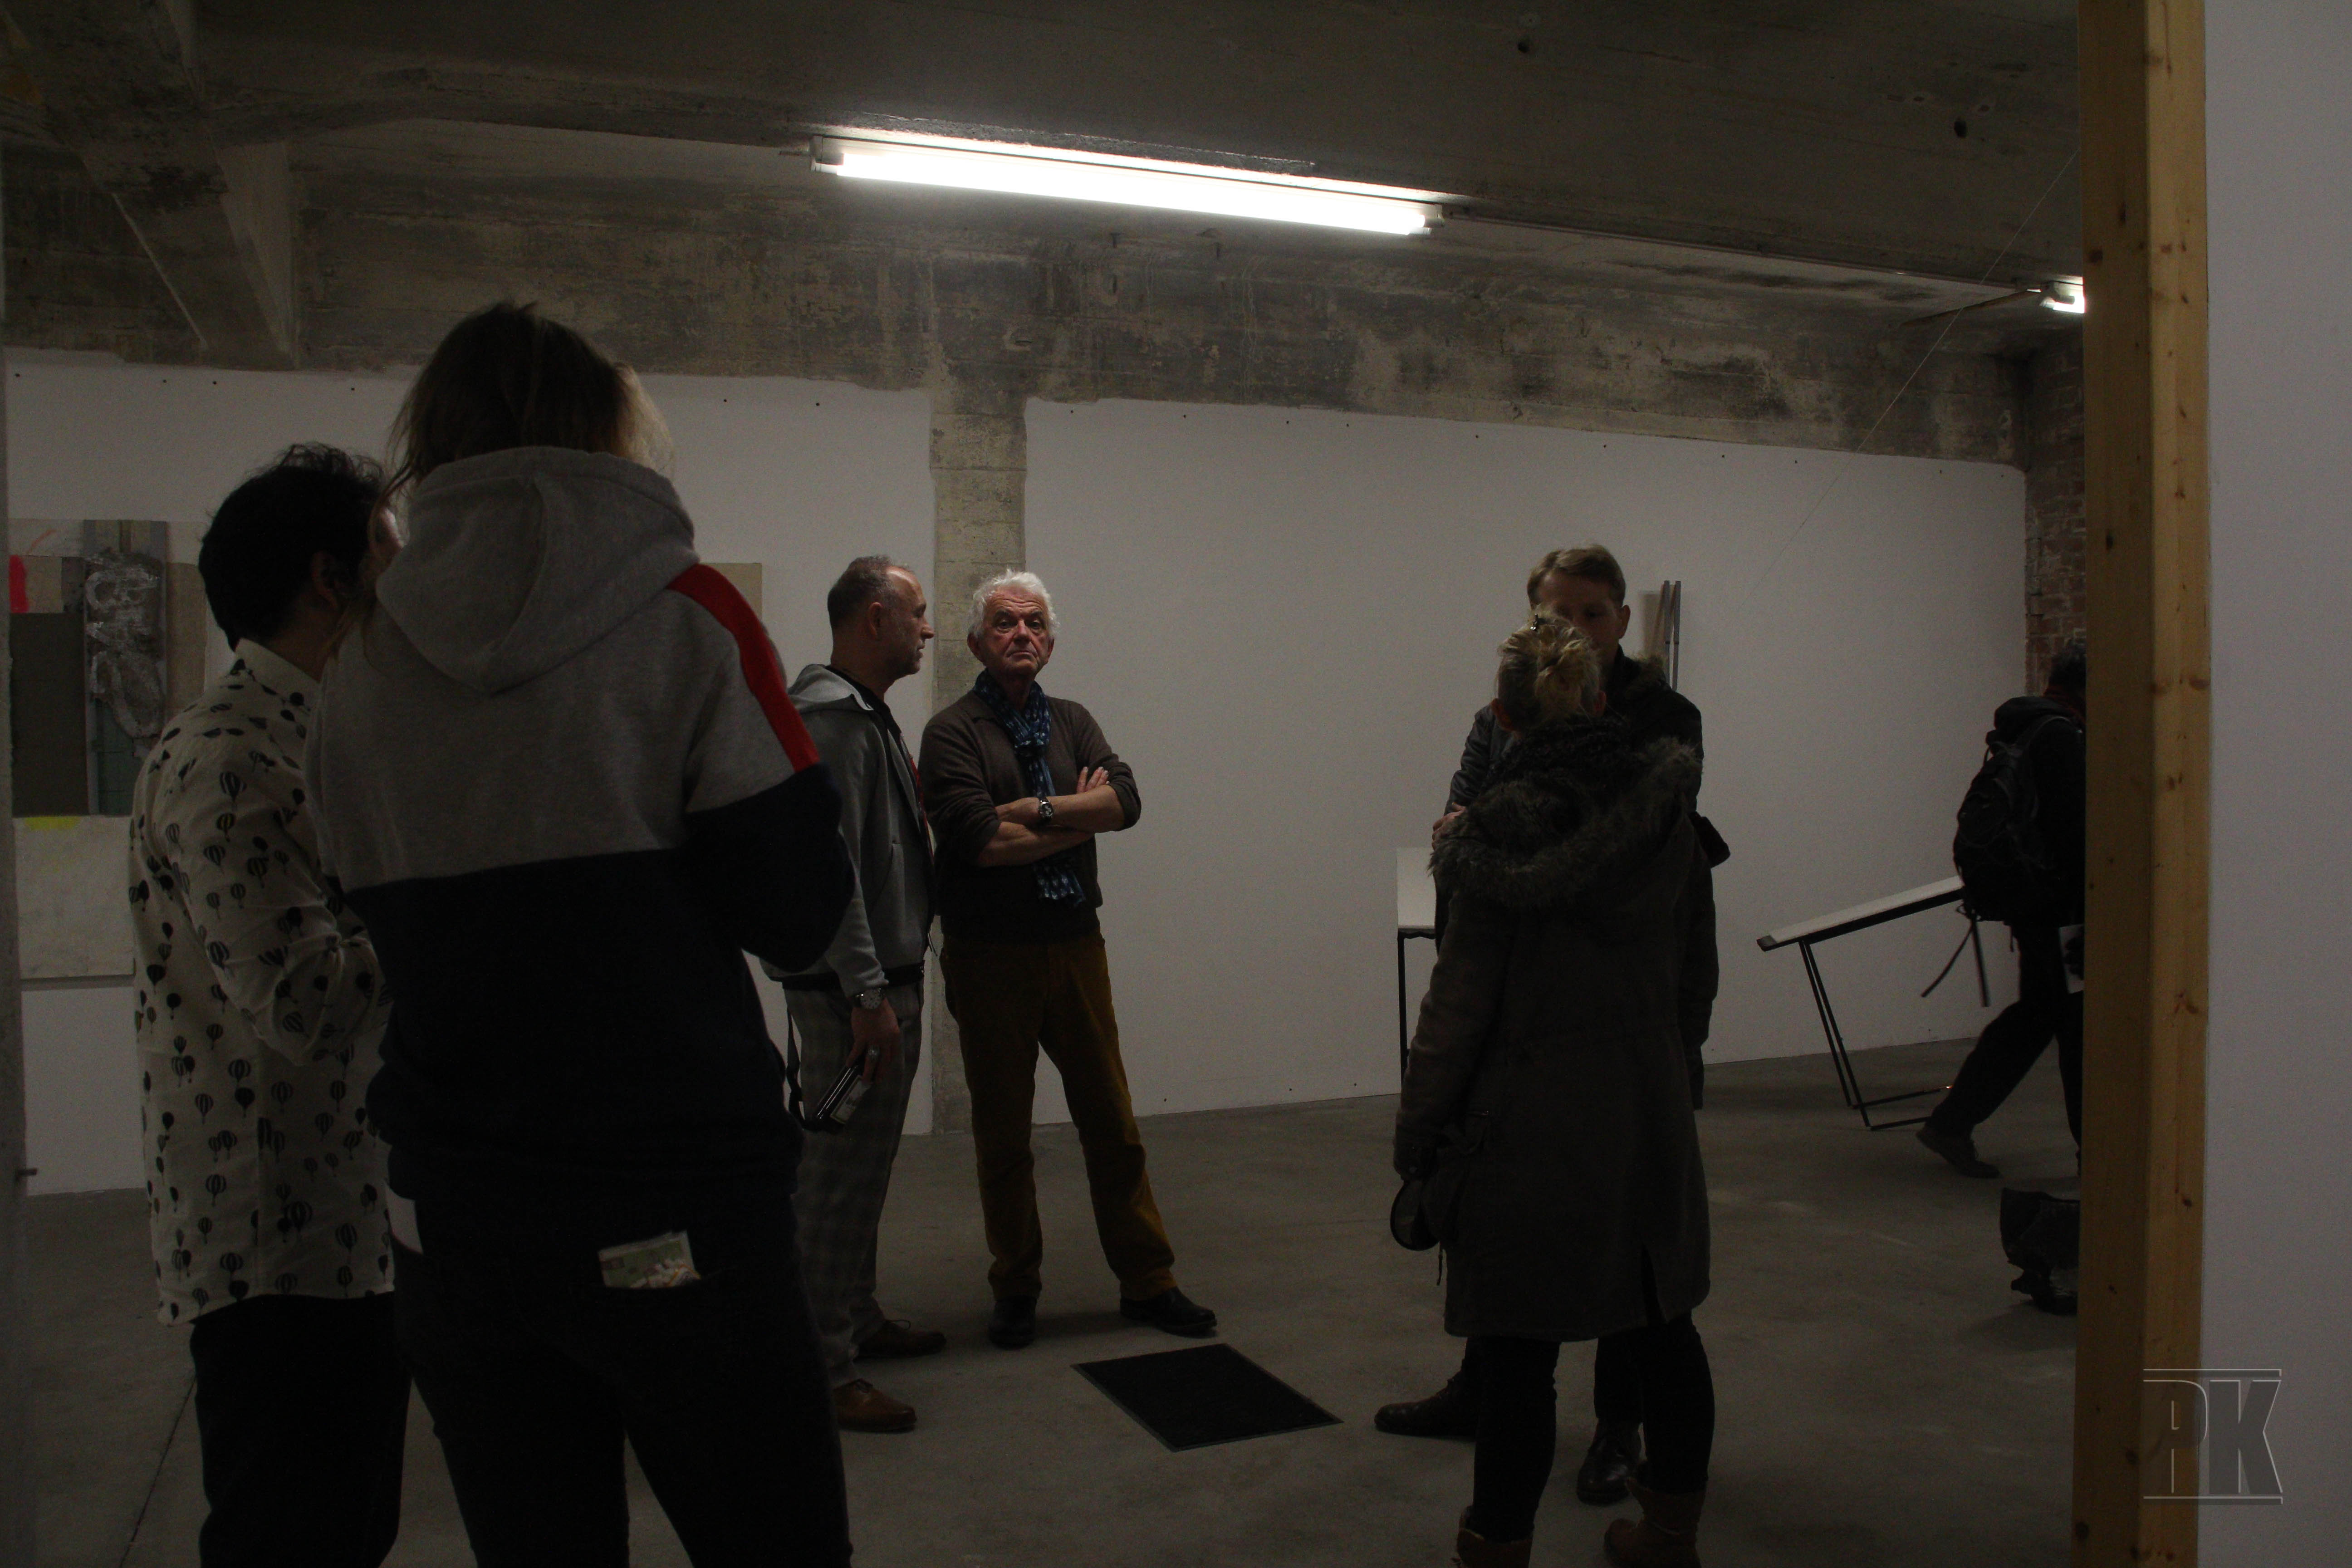 181418 vernissage (review) SPOOR PK rd 37 watermark-2